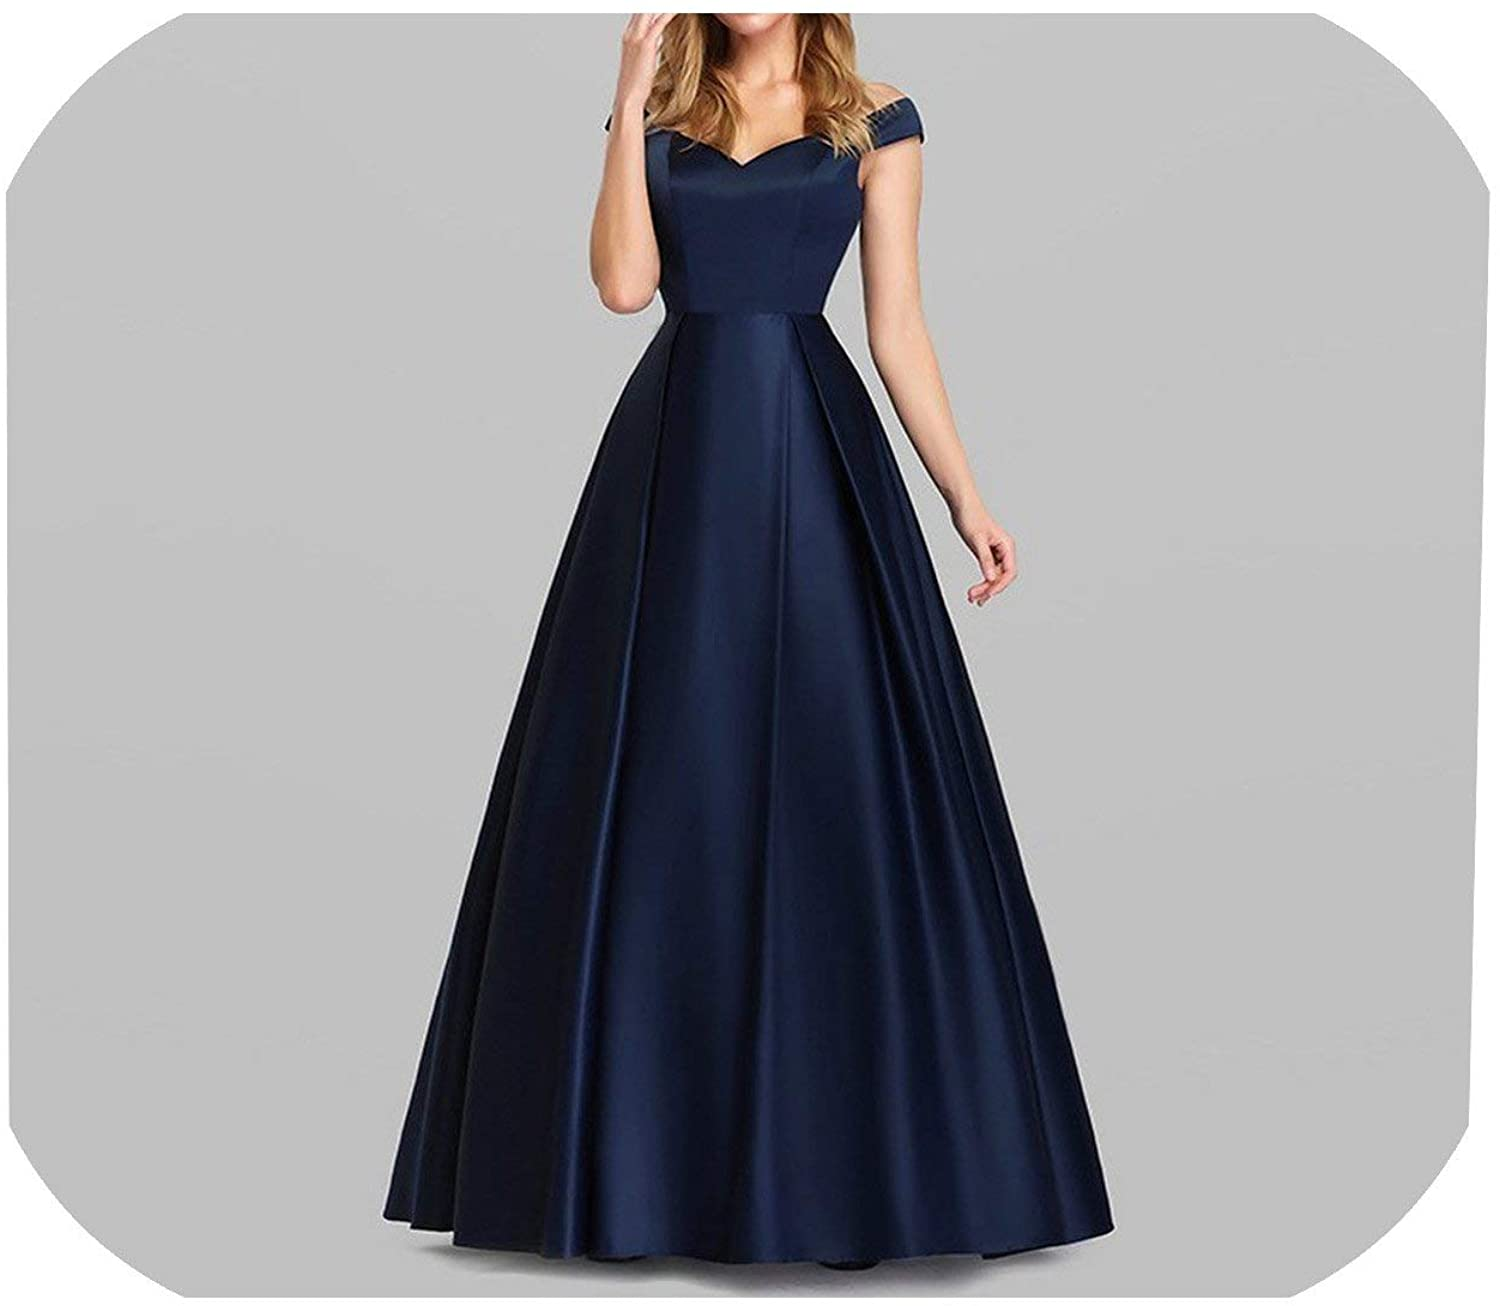 HOT-House Navy Blue Elegant Women Long Prom Dresses V Neck Off The Shoulder Vintage Formal Party Dresses